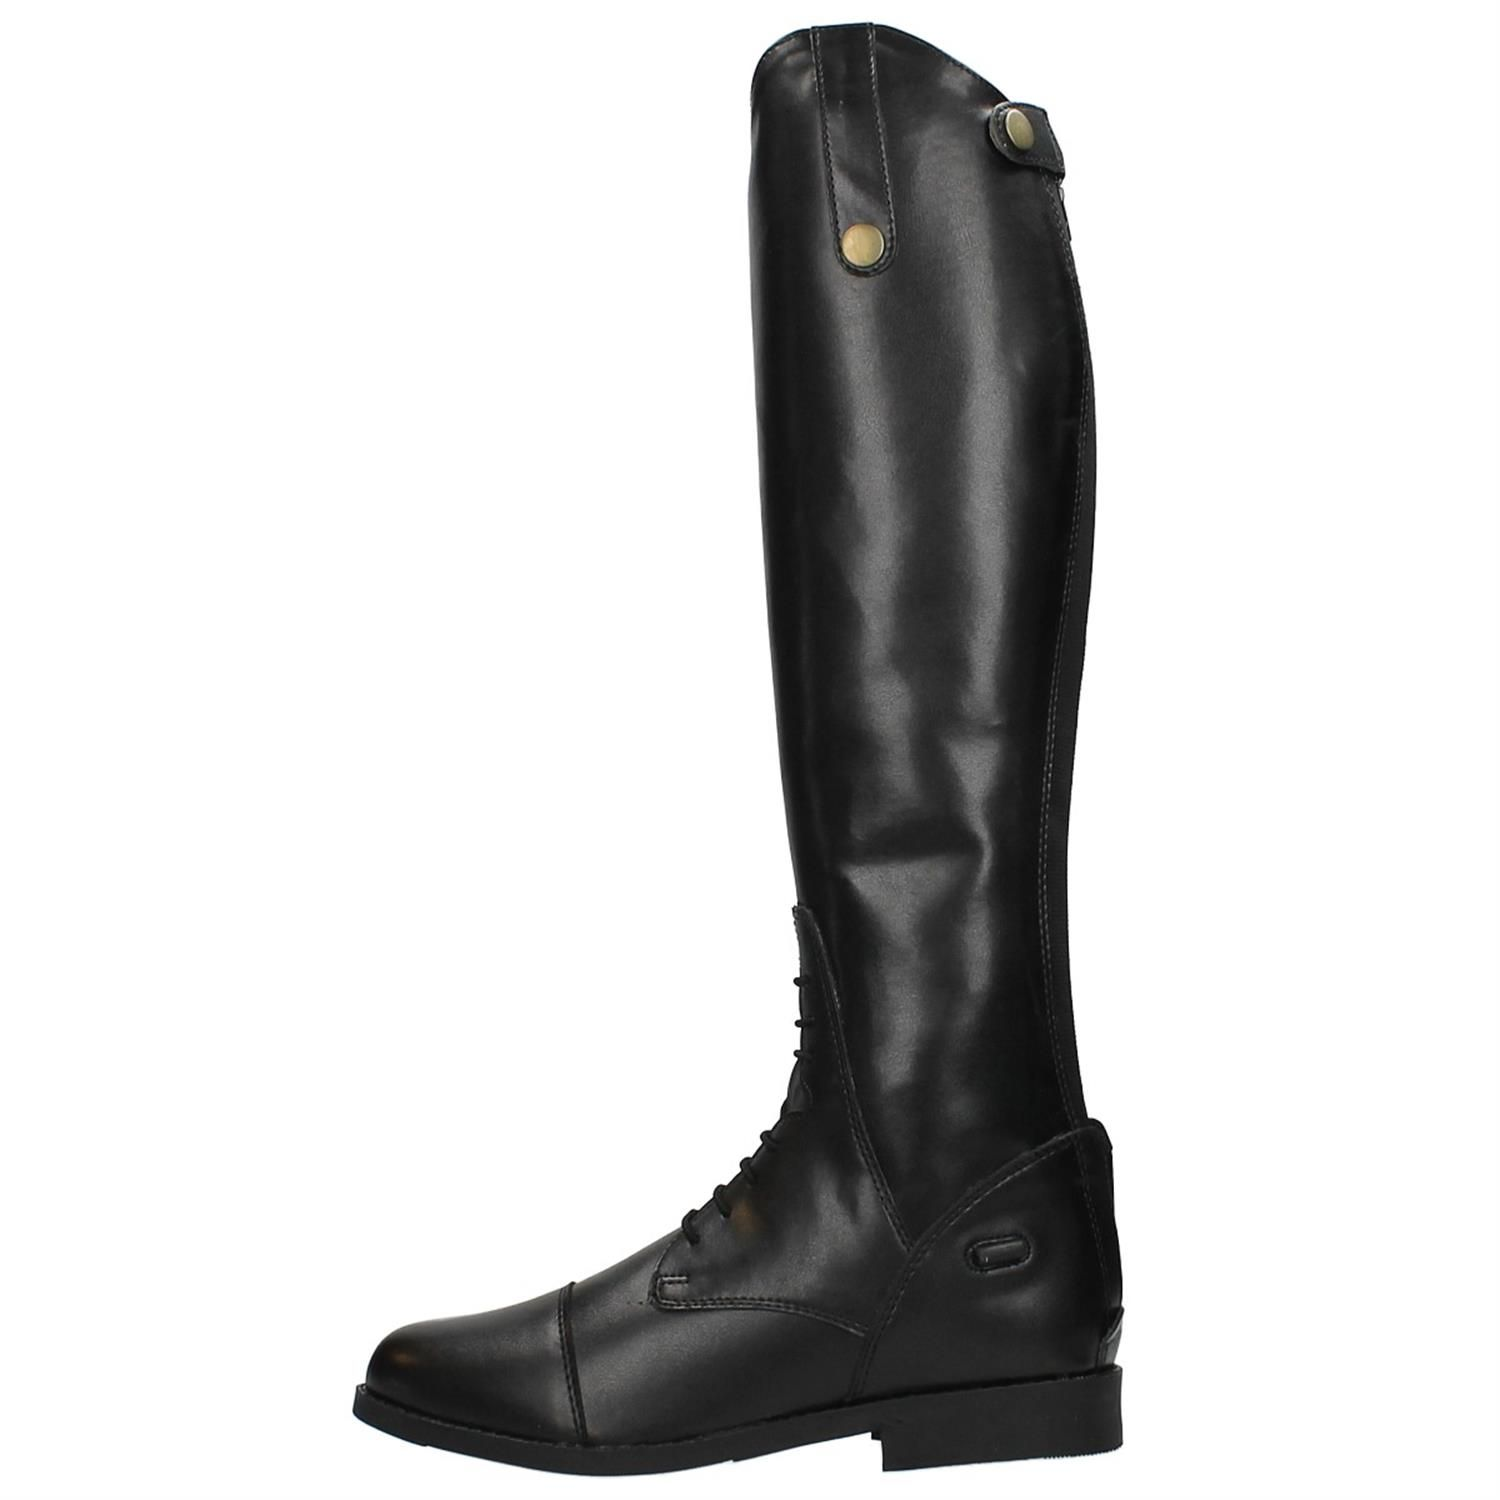 BOOTS BARATO Barland - Riding Boots - Riding Boots - Rider - Epplejeck